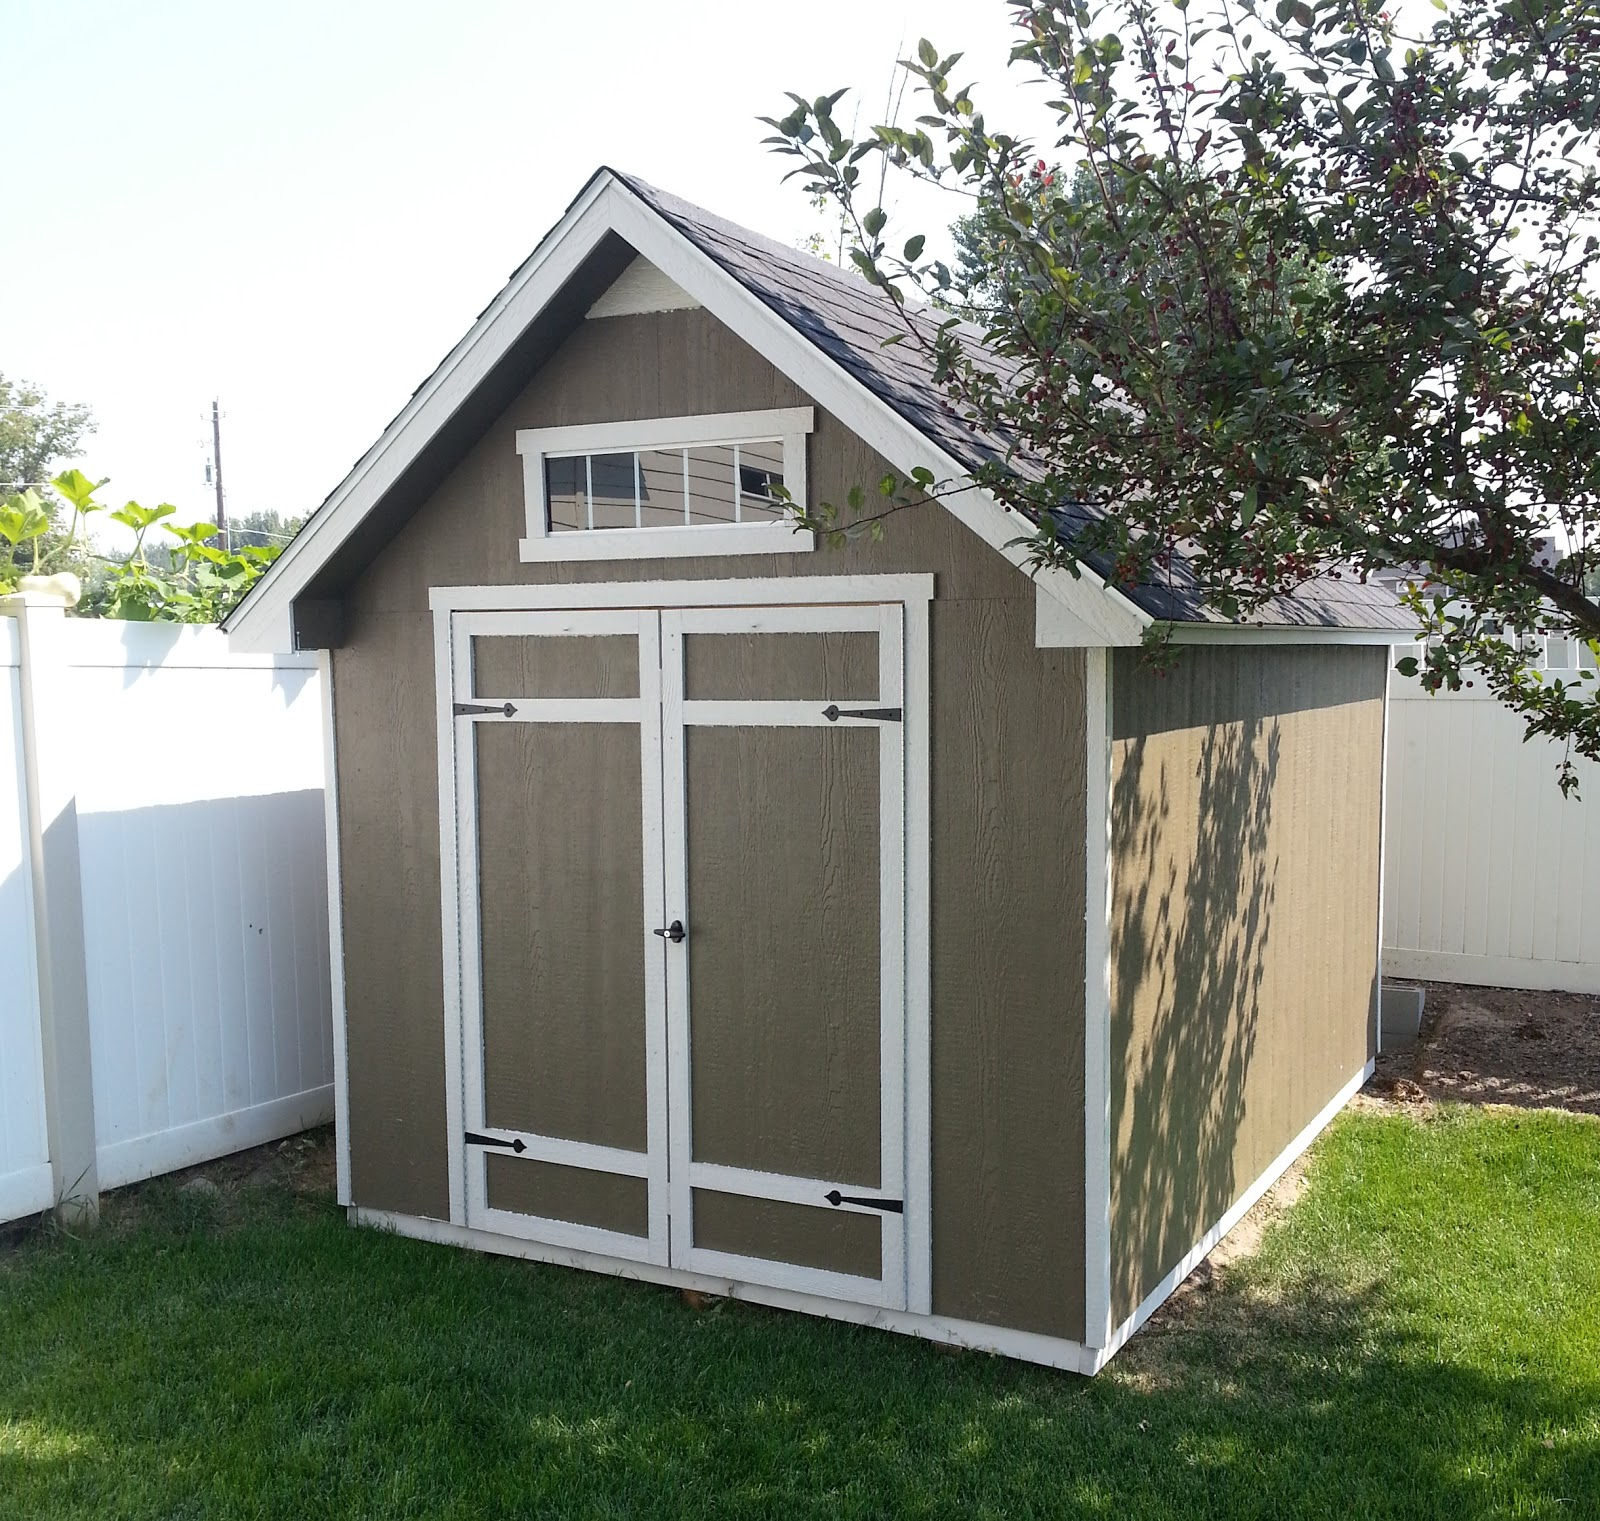 Garden Sheds Costco costco yardline everton shed review ~ review spew